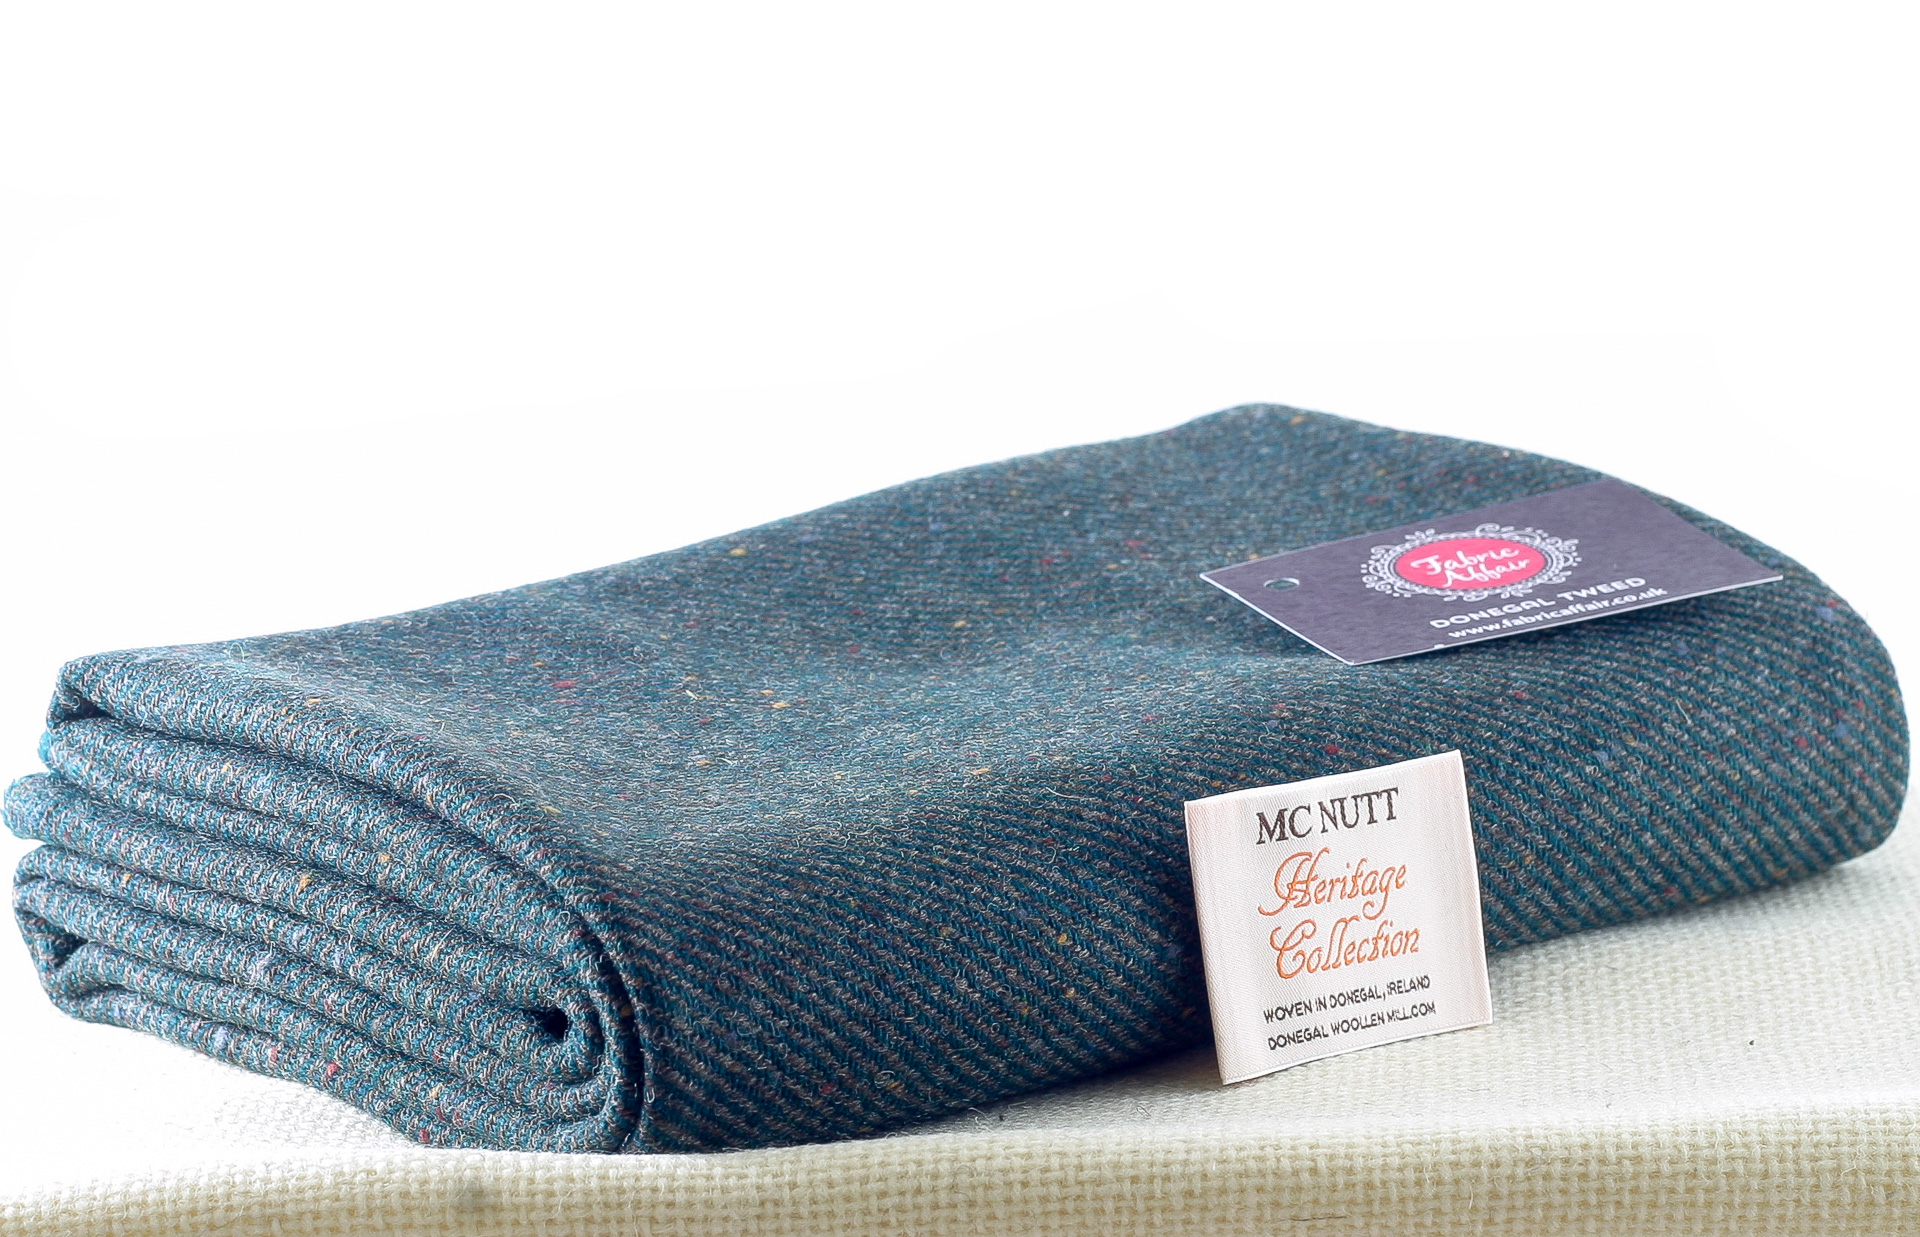 Donegal Tweed by Fabric Affair: Heritage Collection, Midnight Sky Twill.